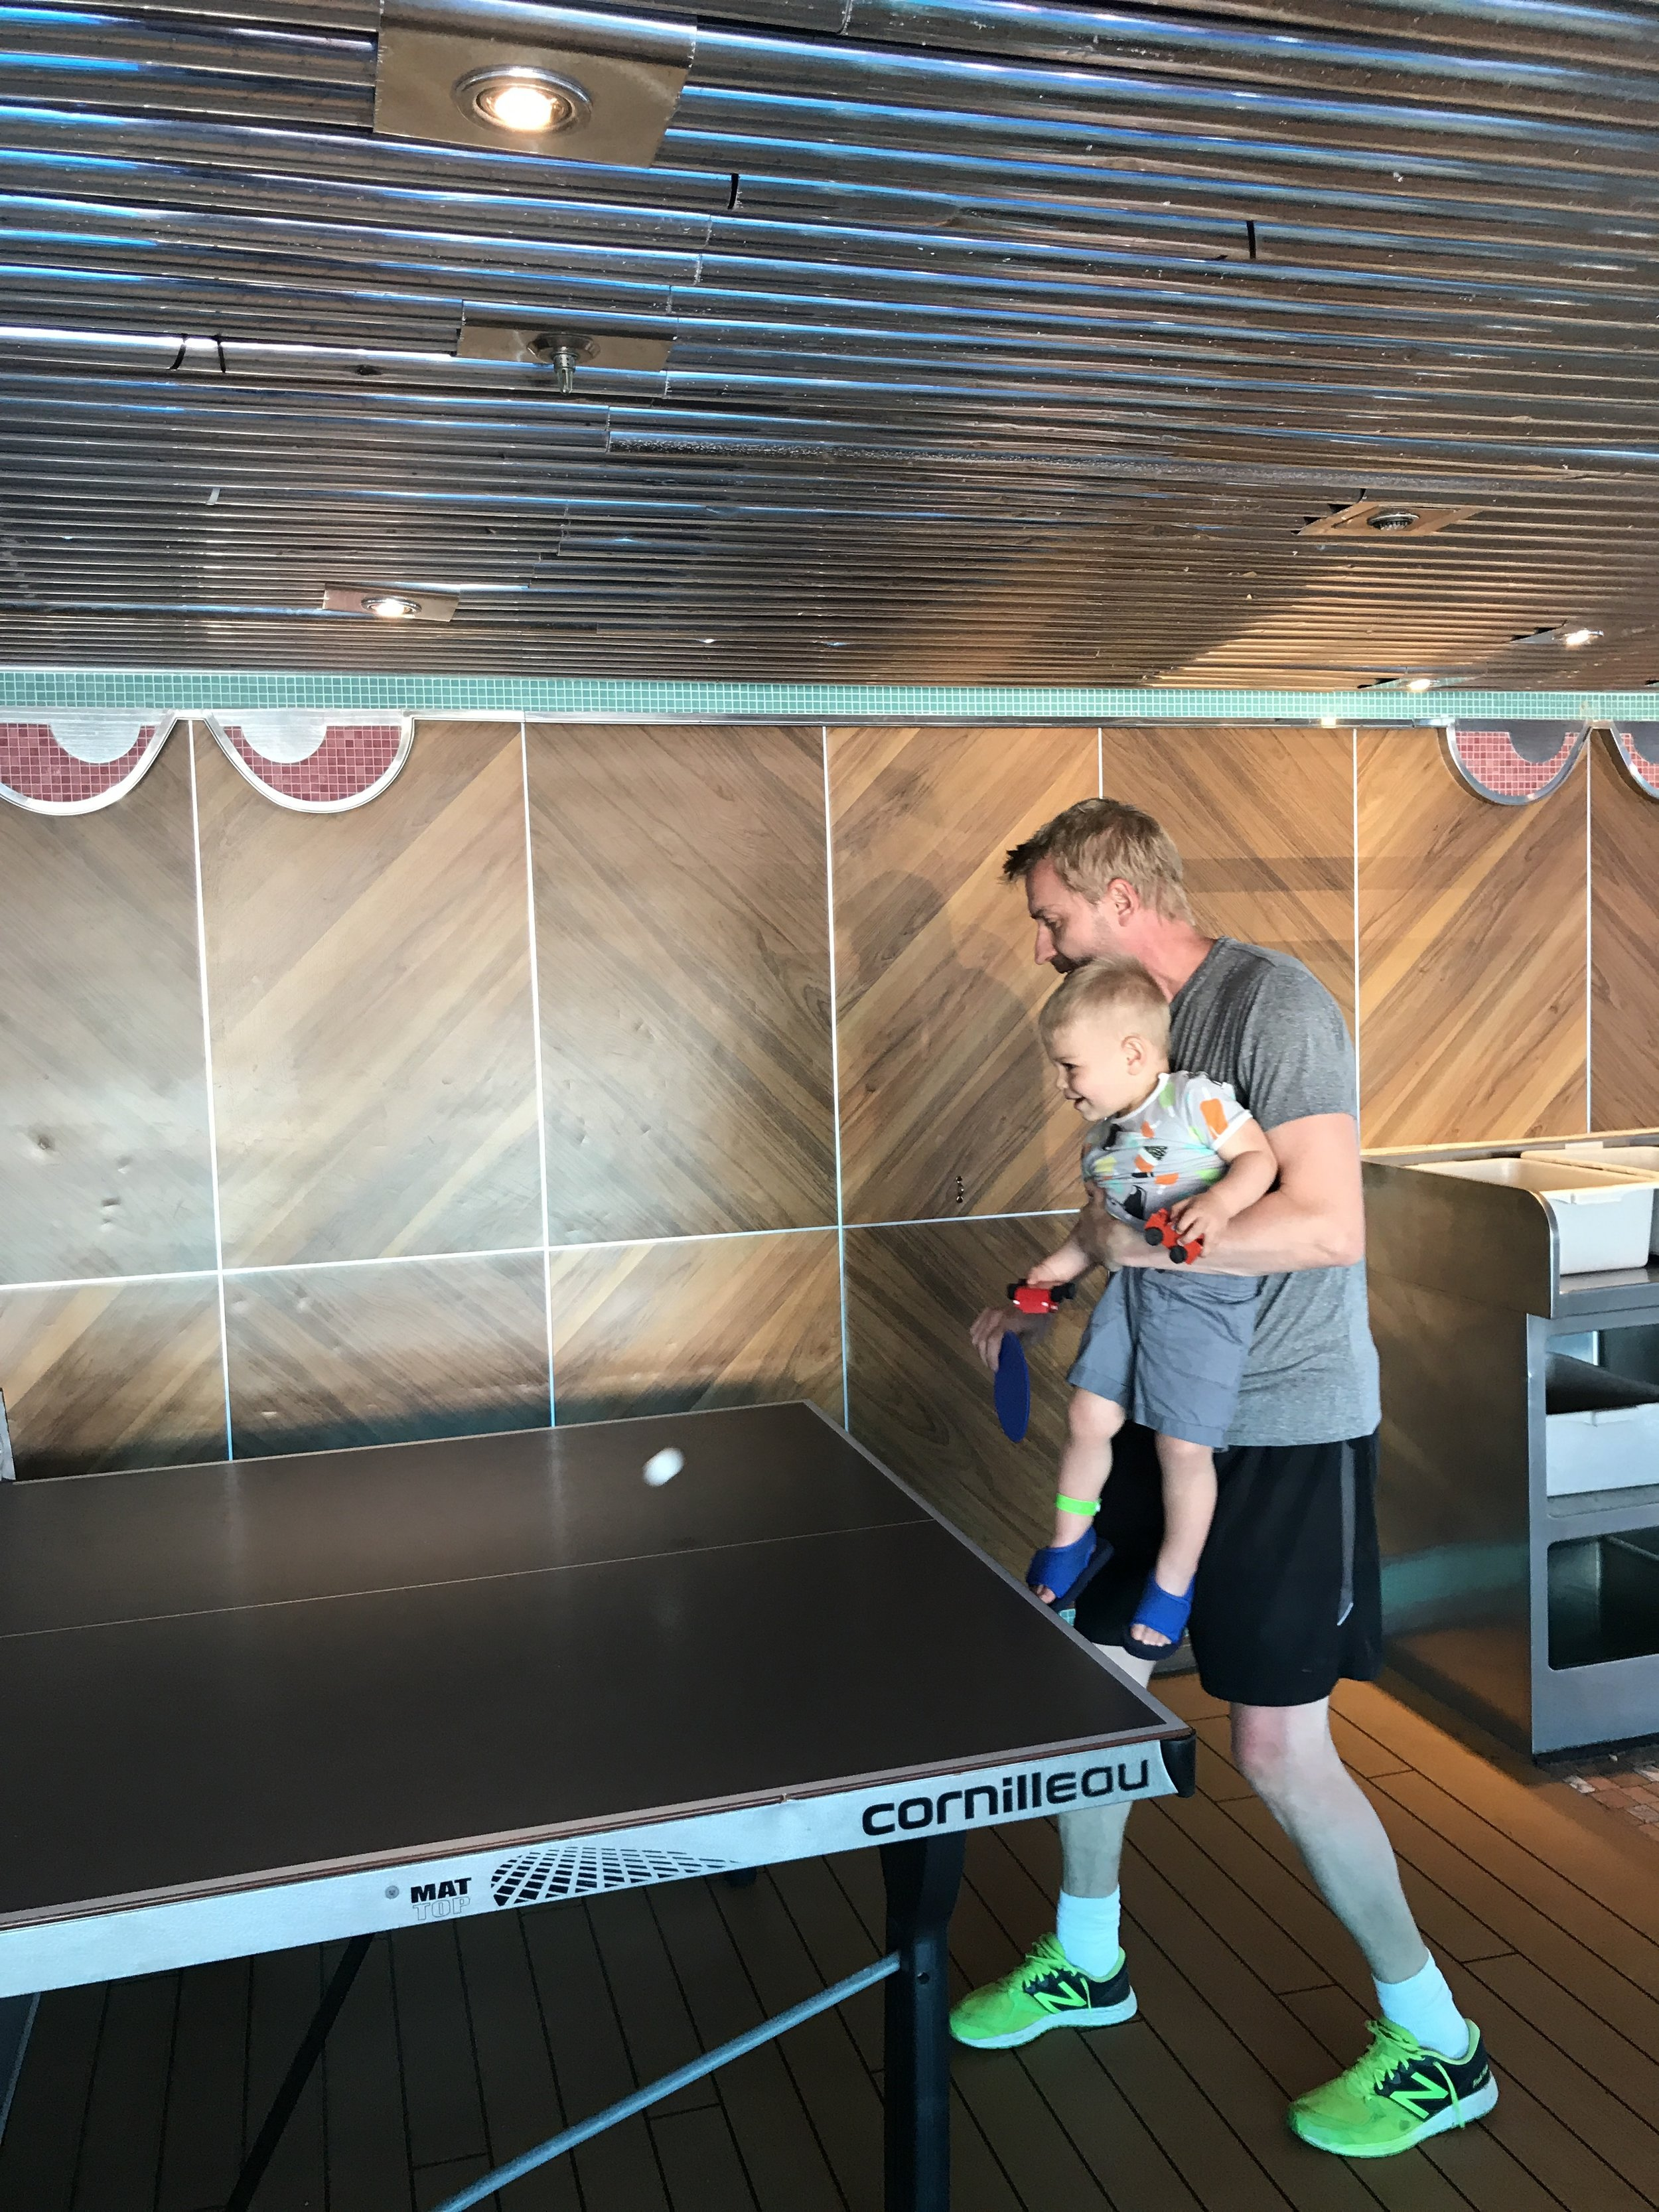 Part of disconnecting is connecting with the people you love. Janne is teaching Aiden how to play ping pong!